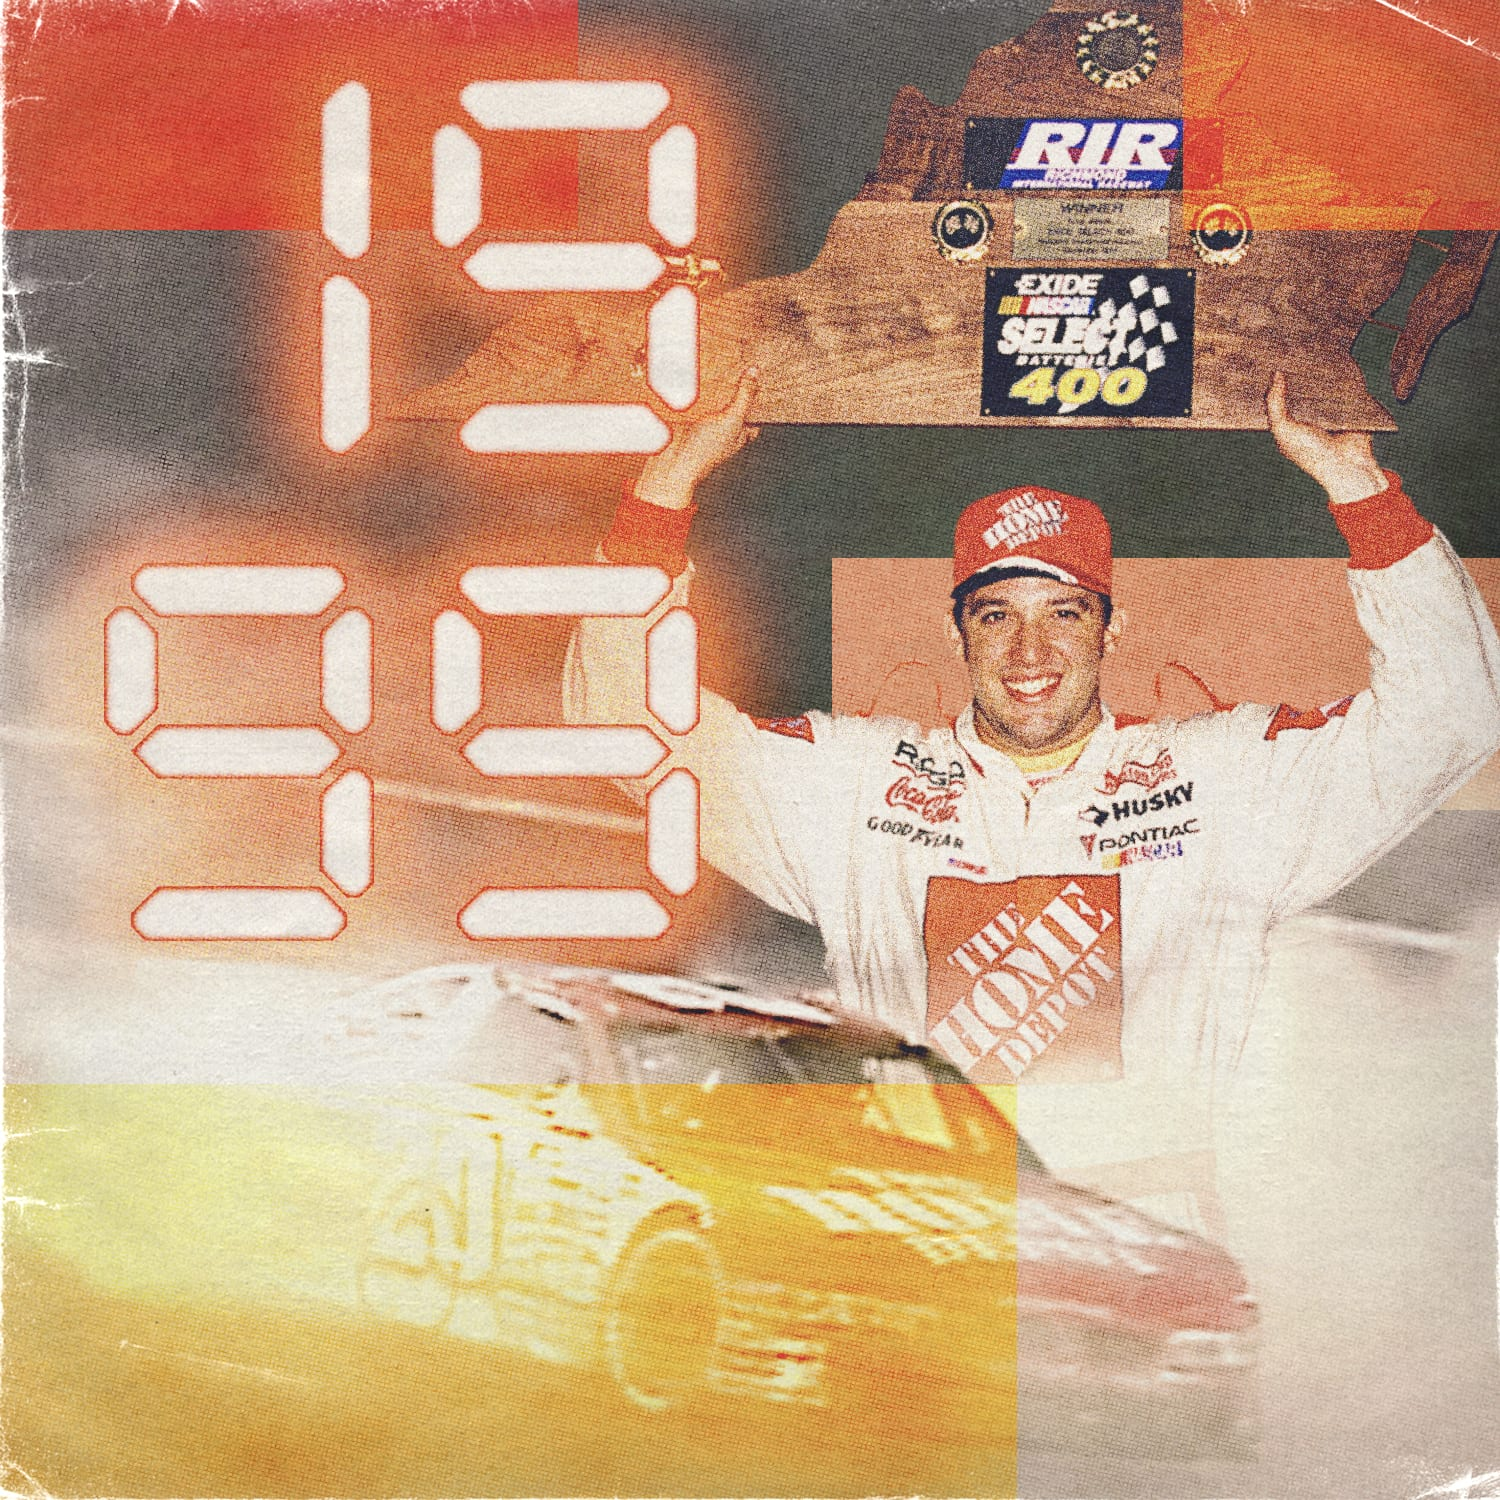 Relive Tony Stewart's first NASCAR Cup Series win from 1999